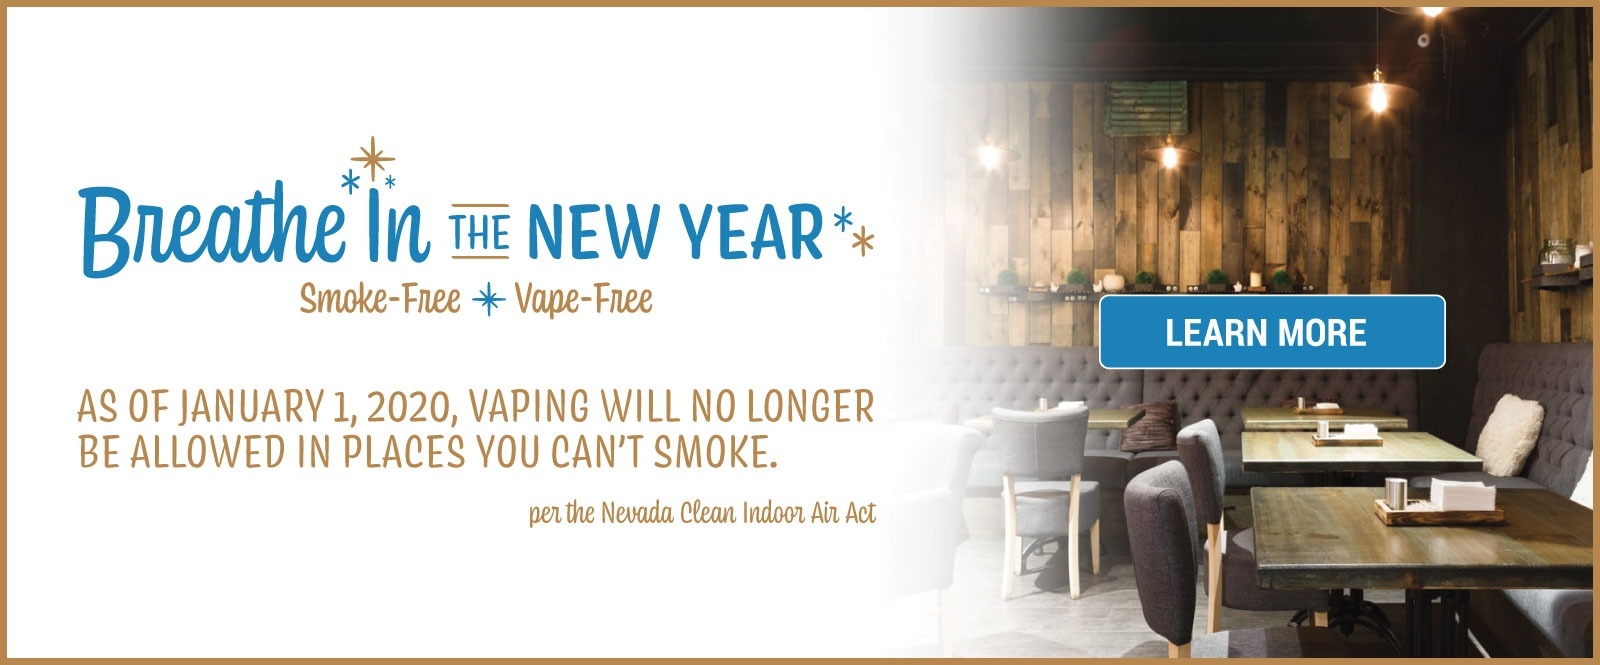 Breathe in the New Year: Smoke & Vape Free